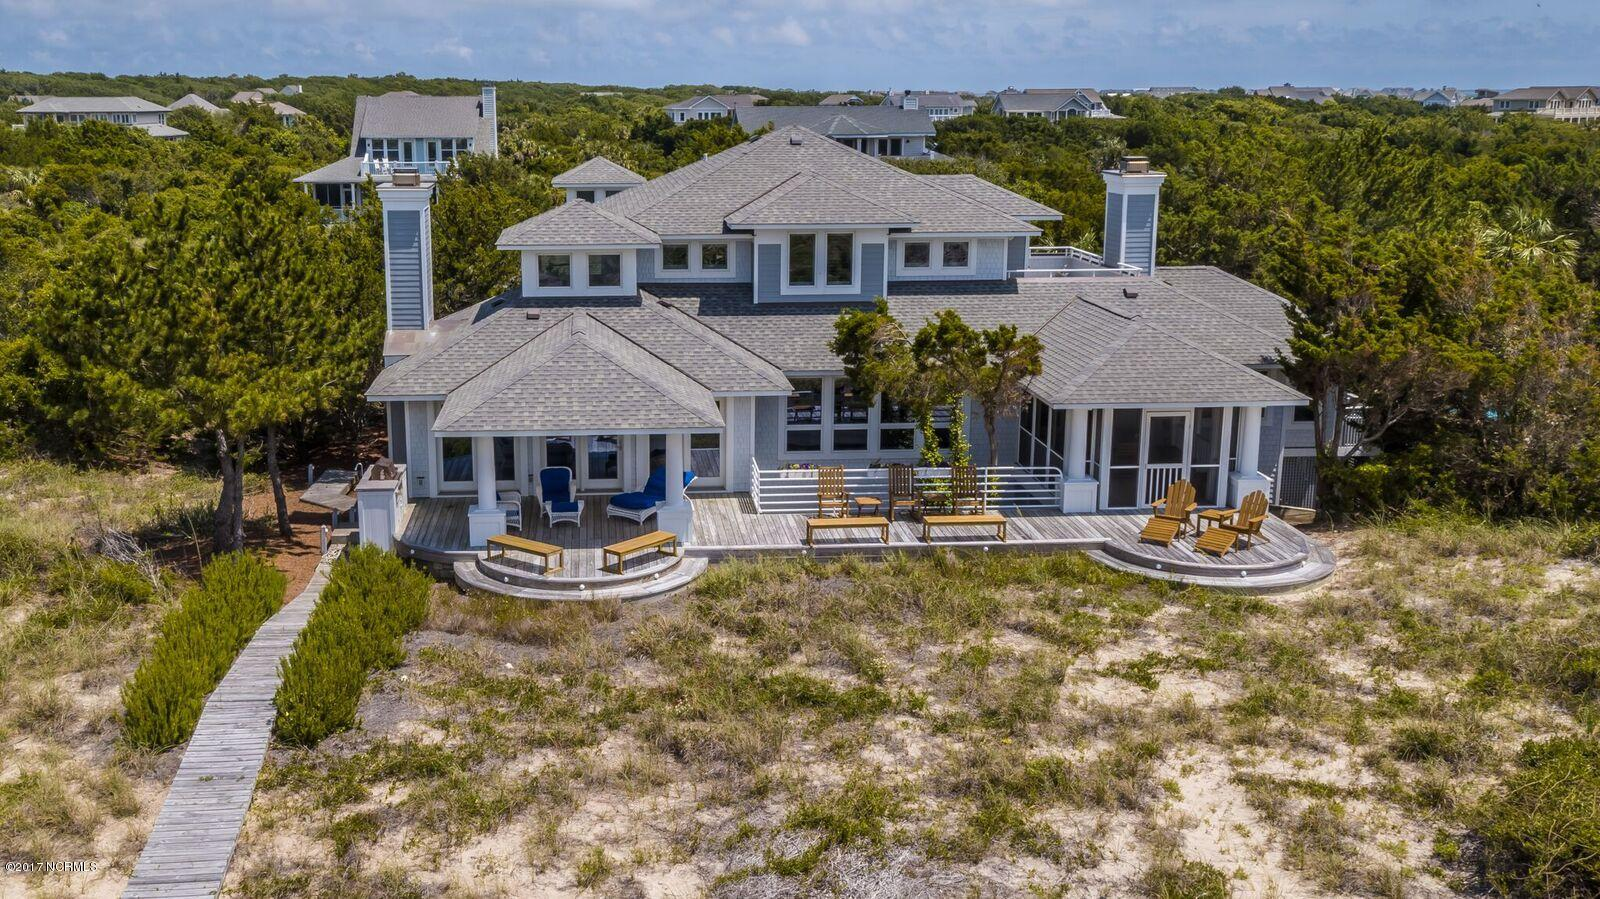 23 Cape Fear Trail, Bald Head Island, North Carolina 4 Bedroom as one of Homes & Land Real Estate